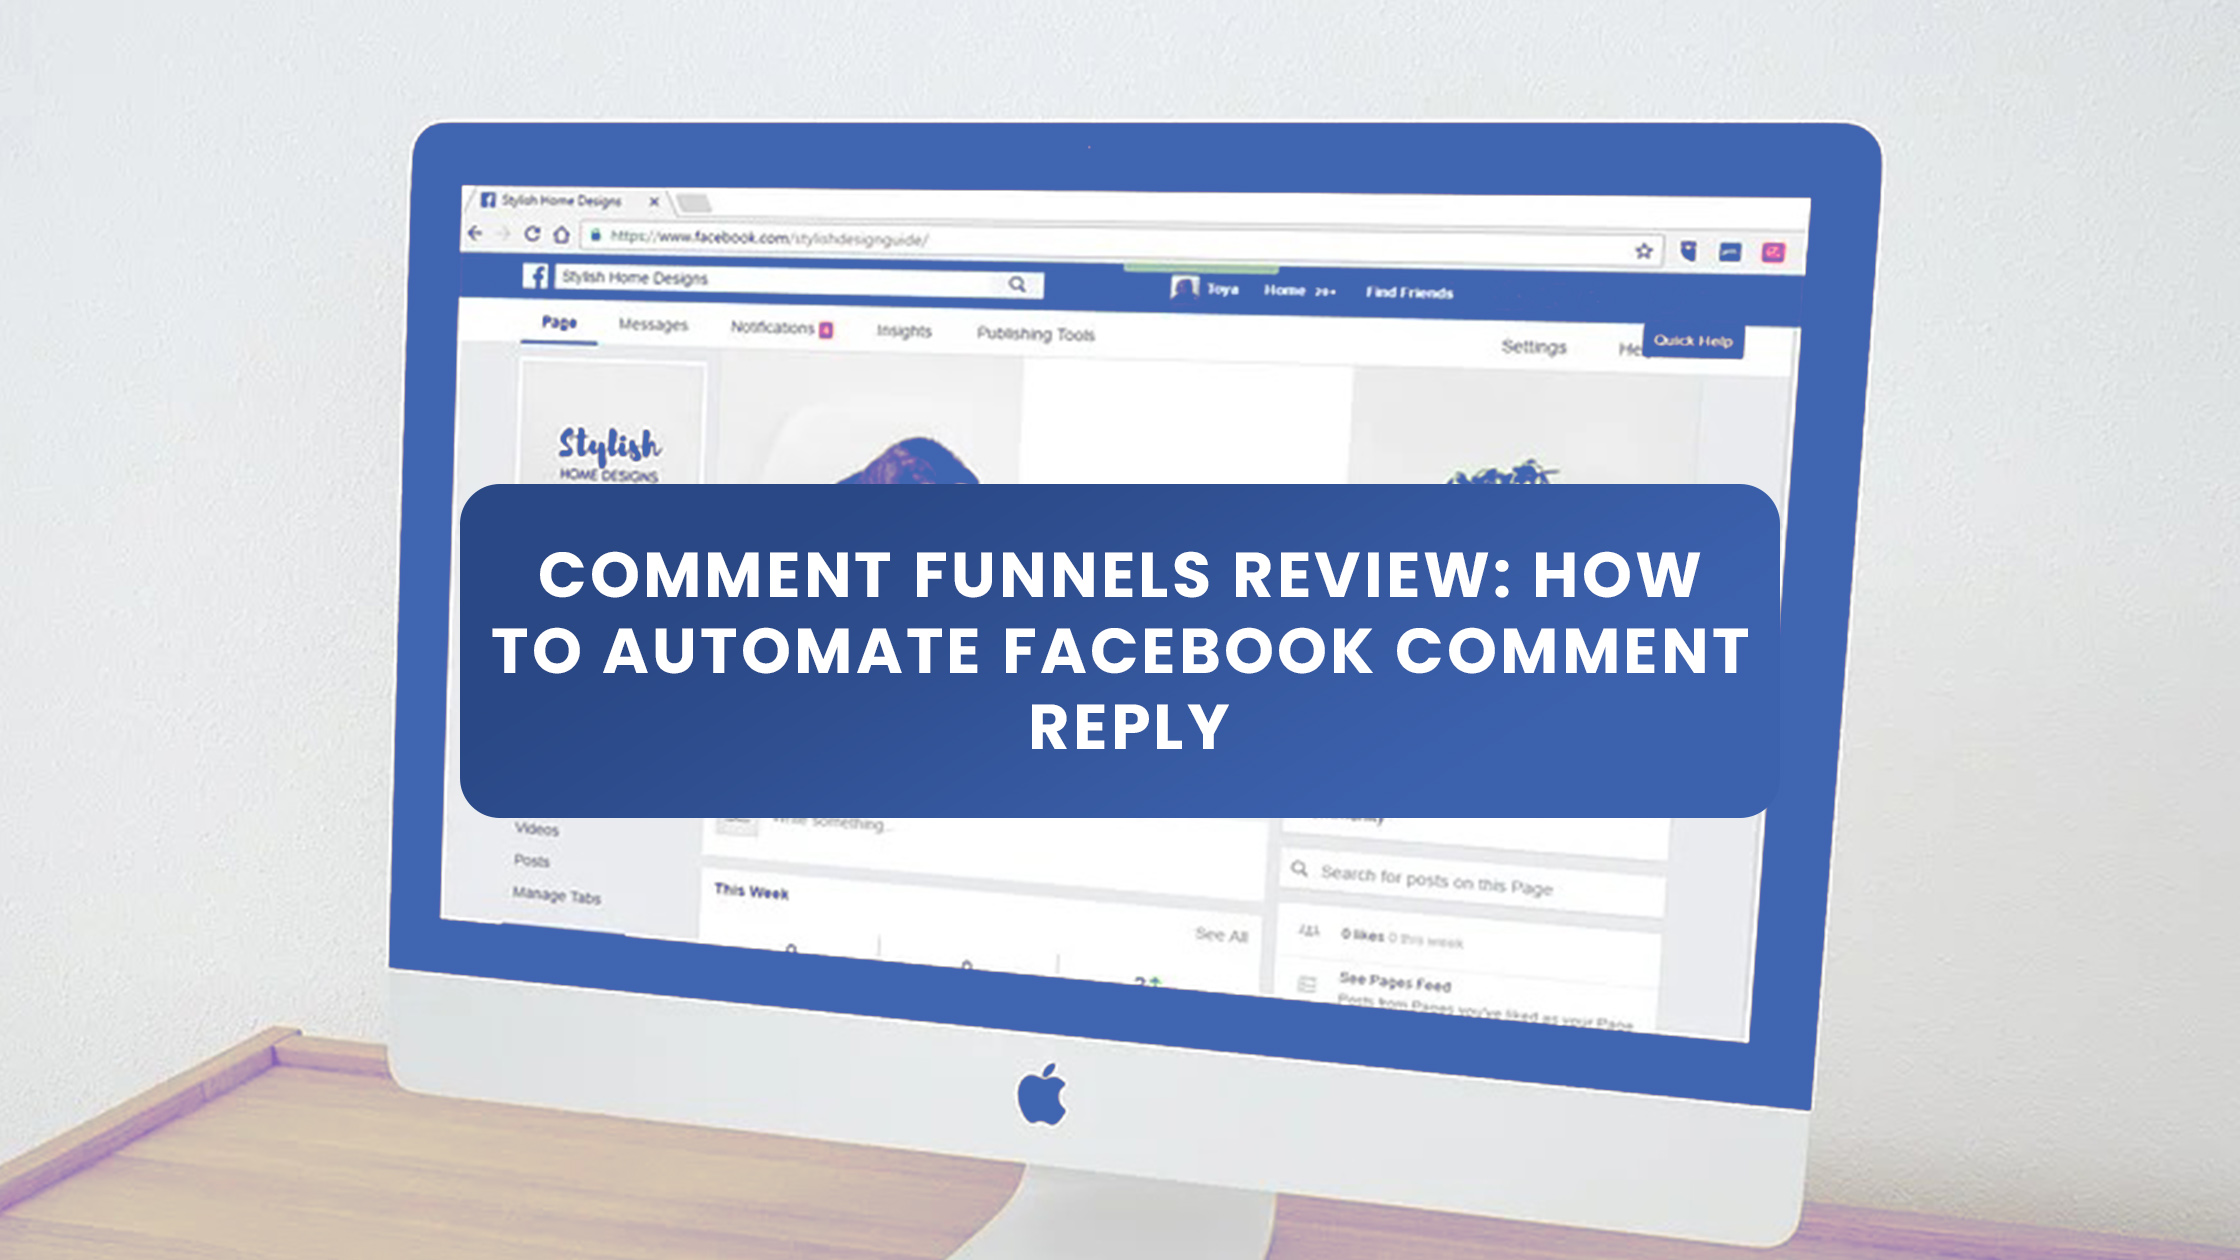 Comment Funnels Review: How to Automate Facebook Comment Reply